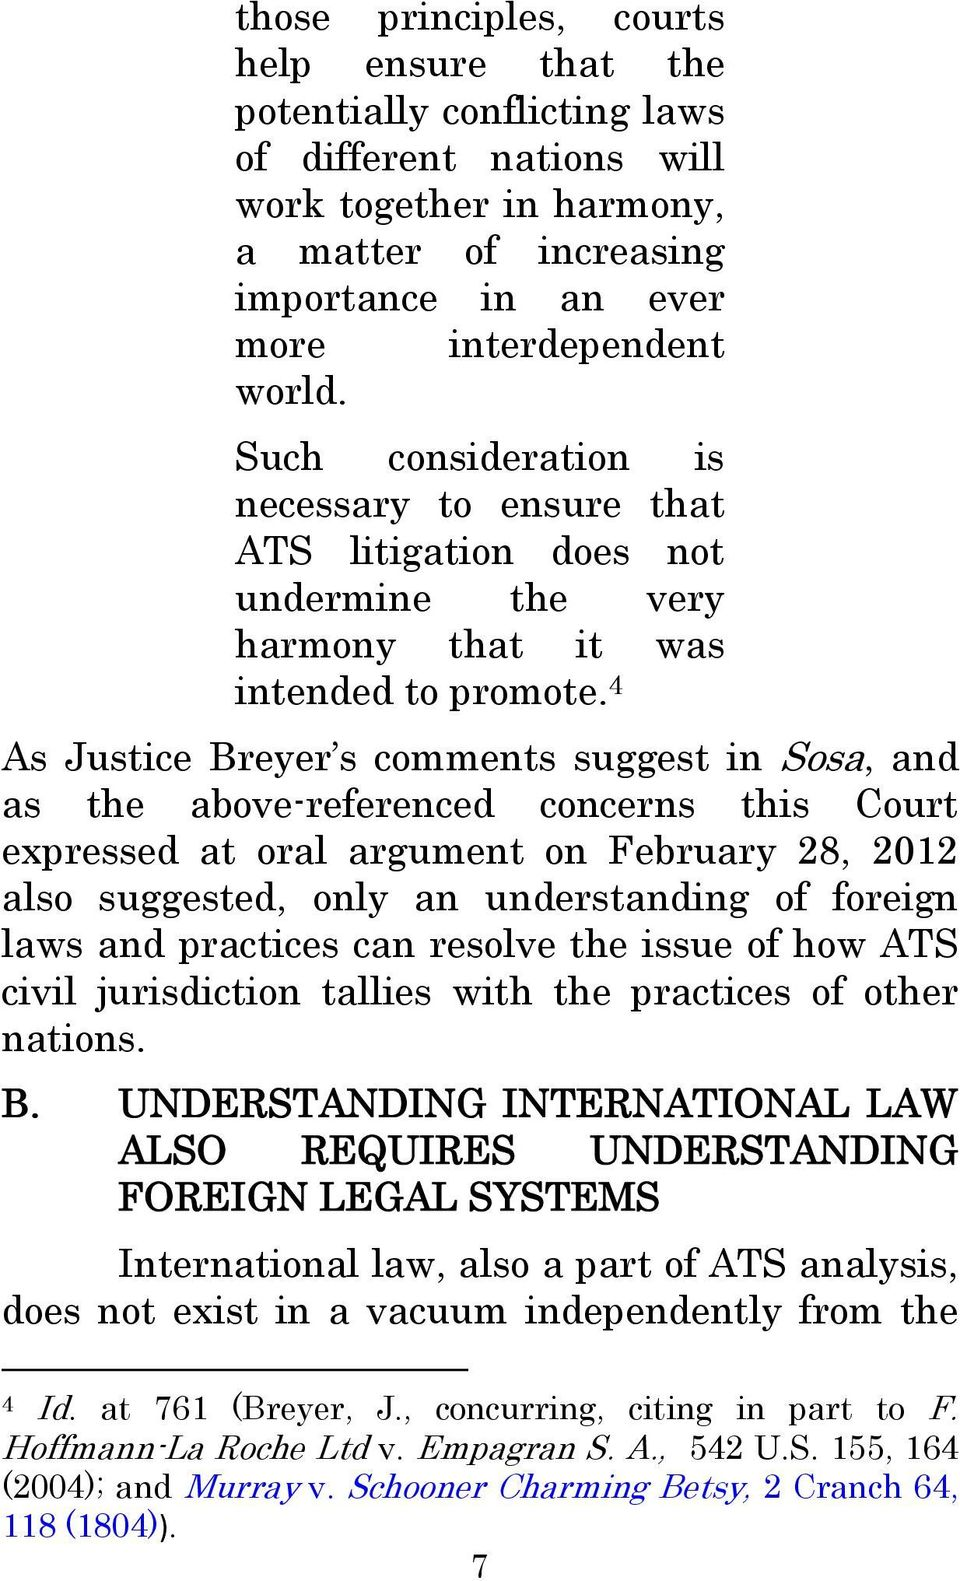 4 As Justice Breyer s comments suggest in Sosa, and as the above-referenced concerns this Court expressed at oral argument on February 28, 2012 also suggested, only an understanding of foreign laws